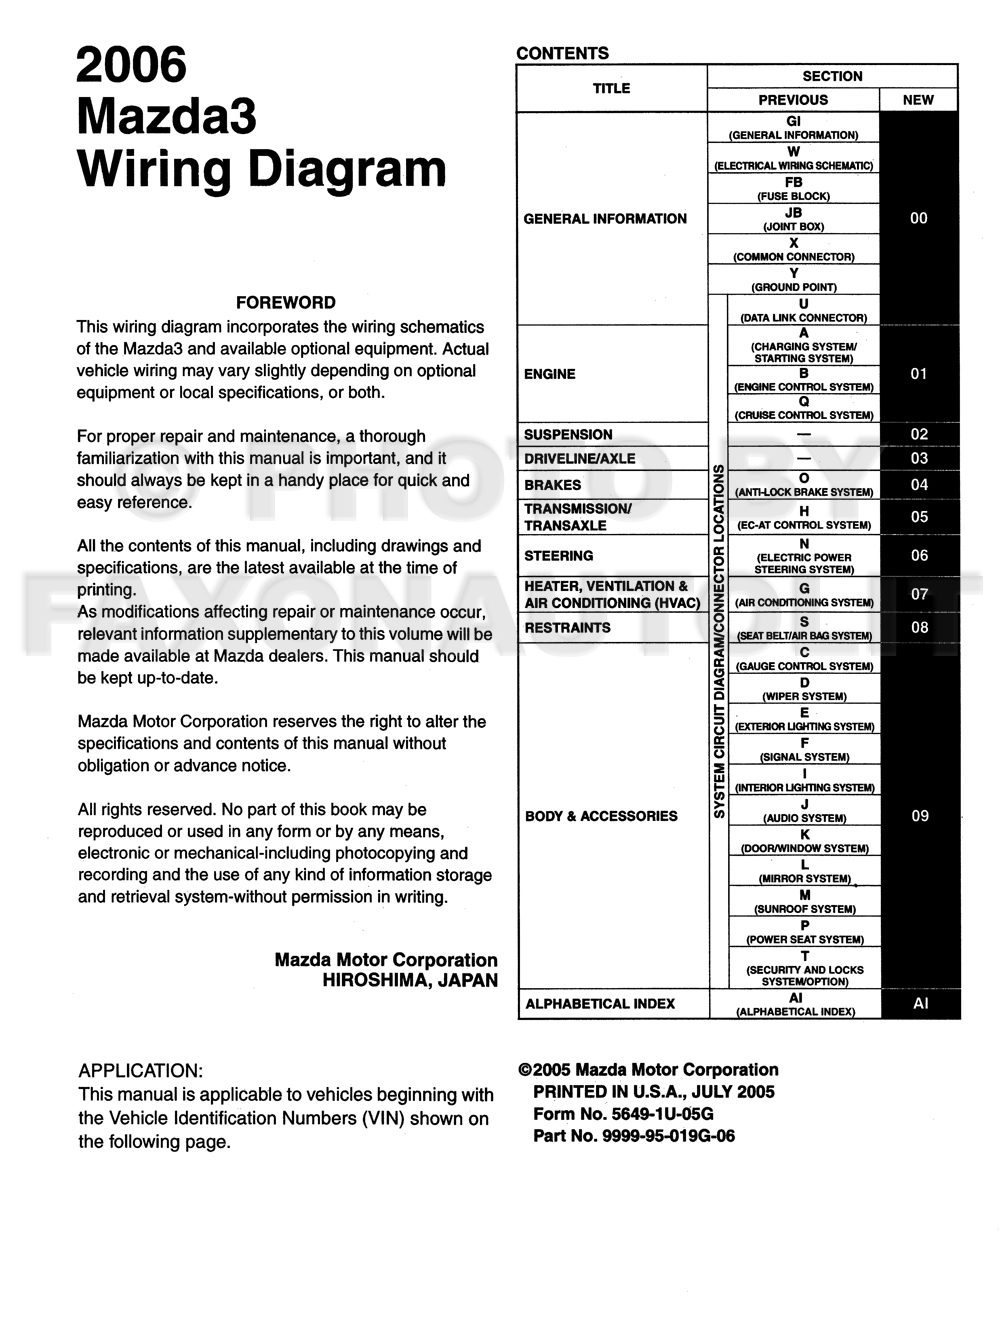 diagram] 2004 mazda 3 radio wiring diagram full version hd quality wiring  diagram - wiringpdf.giornatedellaserra.it  giornate della serra